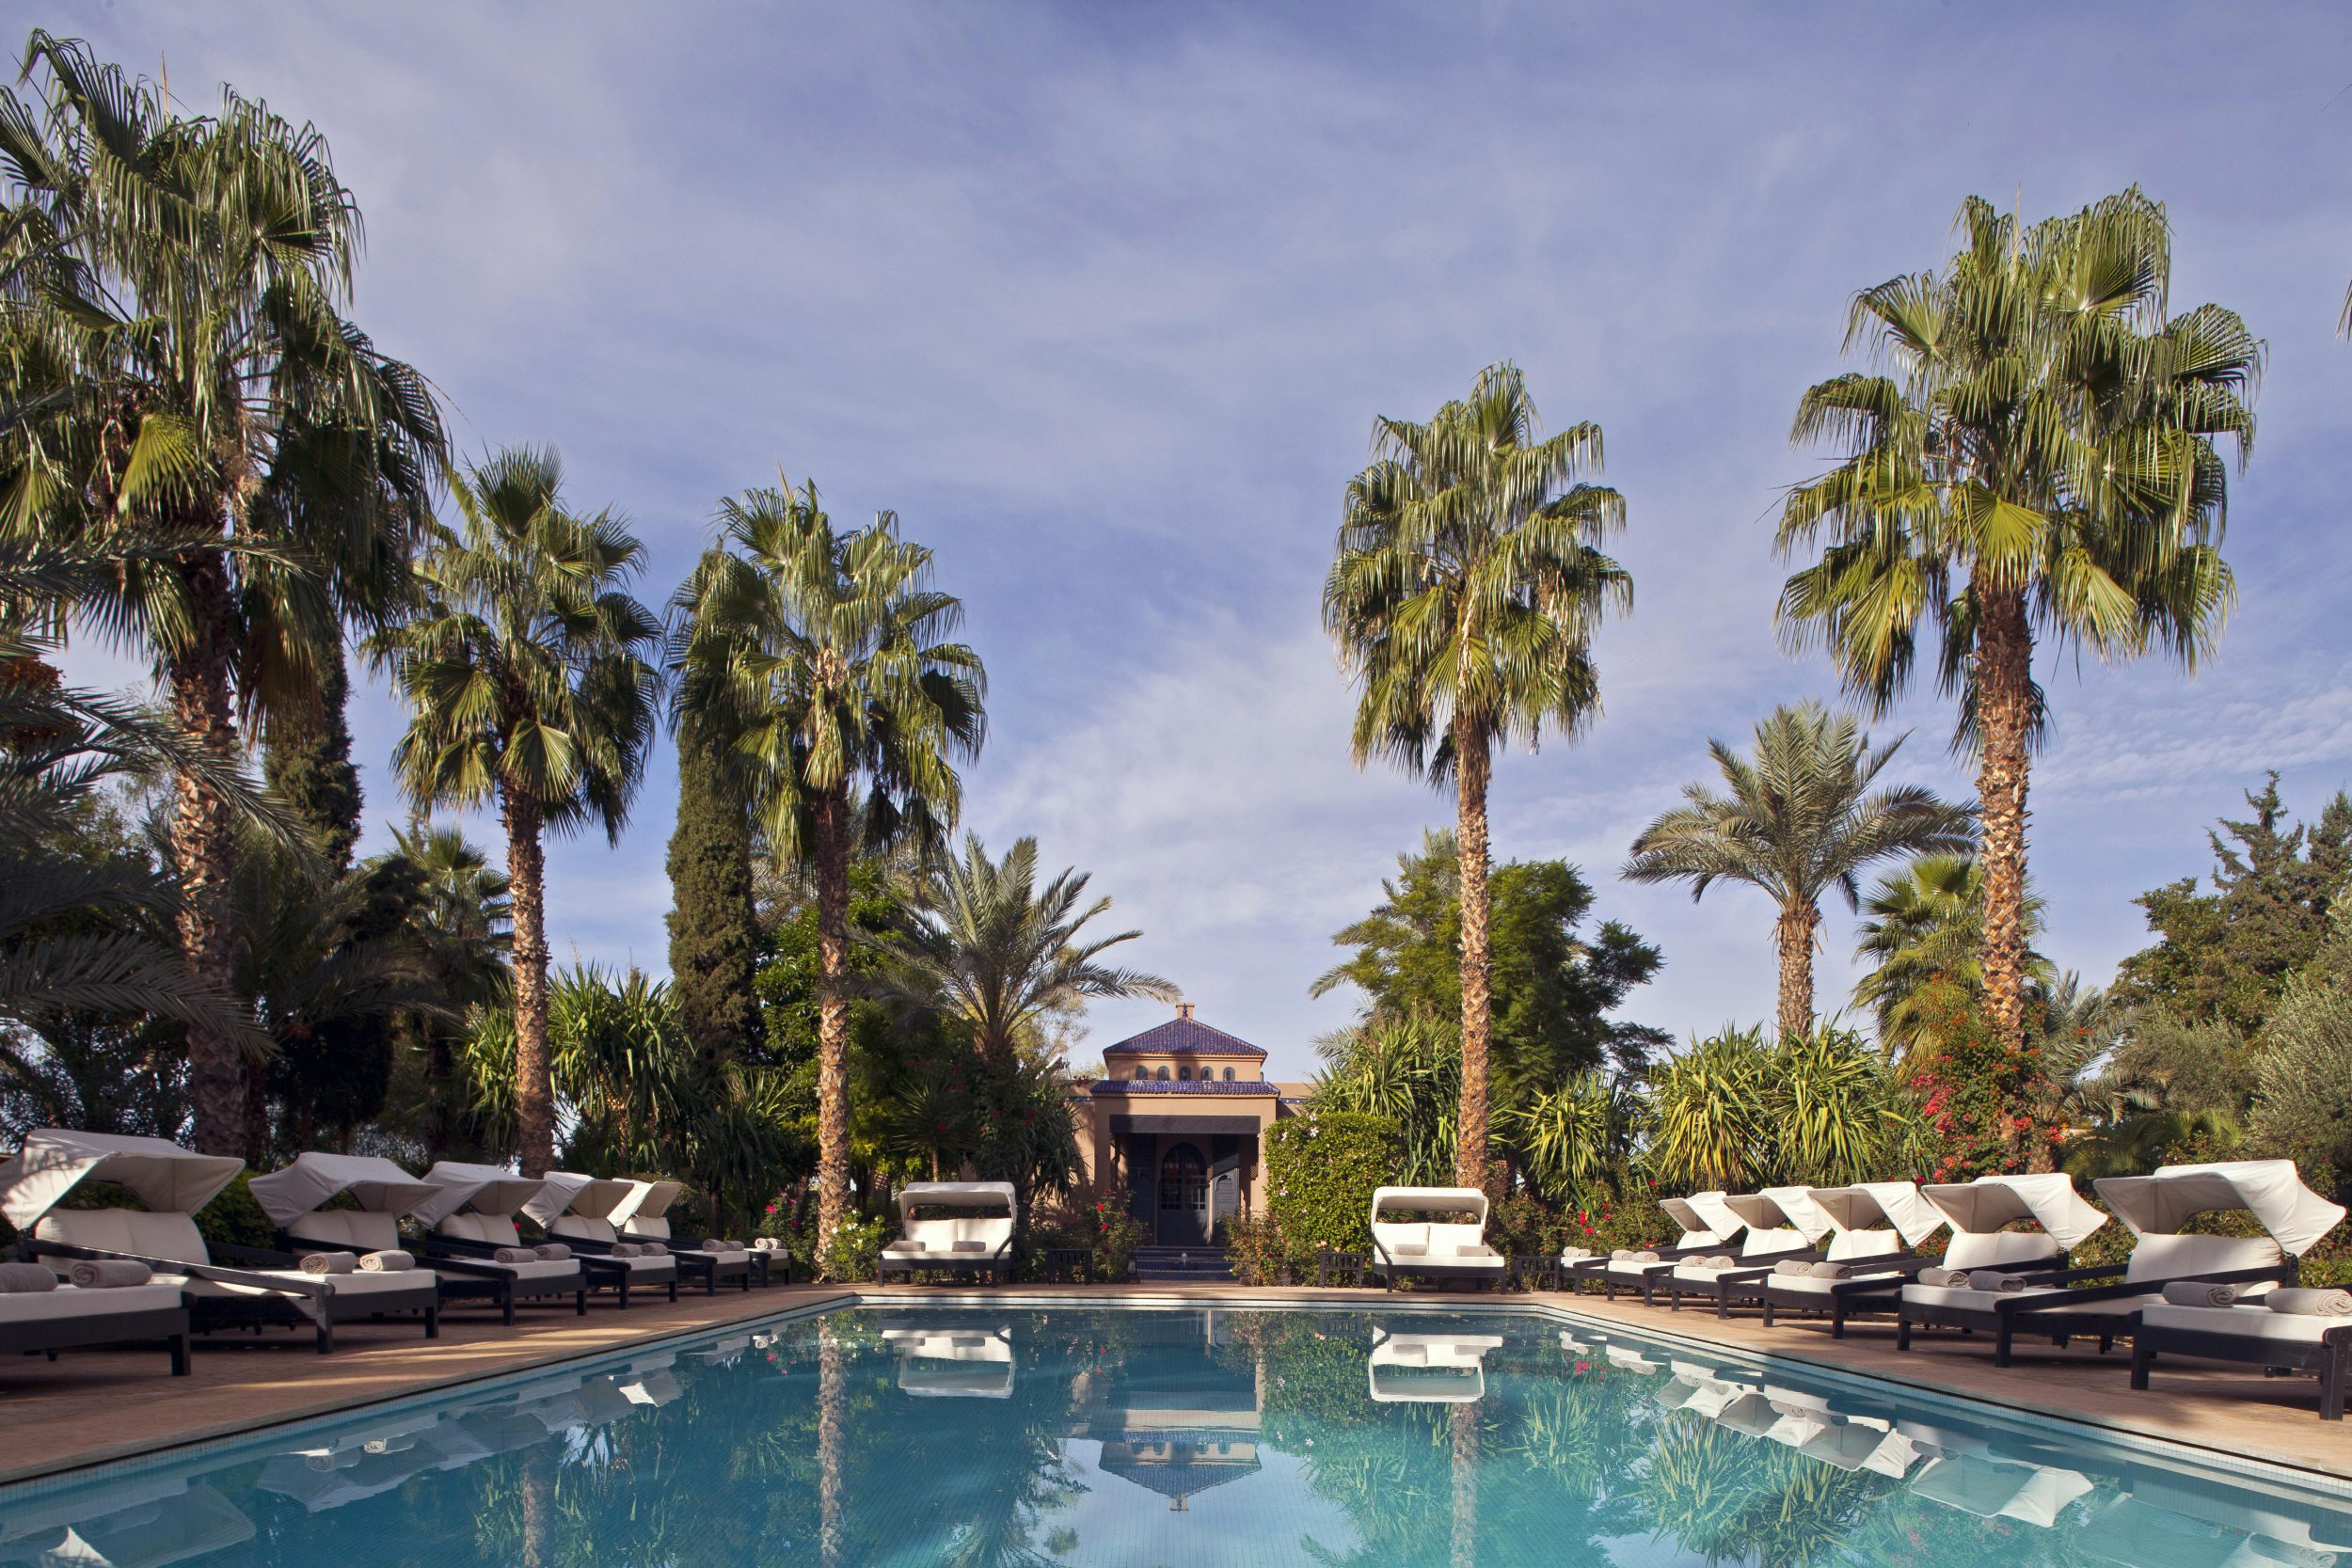 View of the swimming pool surrounded by double shaded loungers and palm trees, Palais de L'Ô, Marrakech